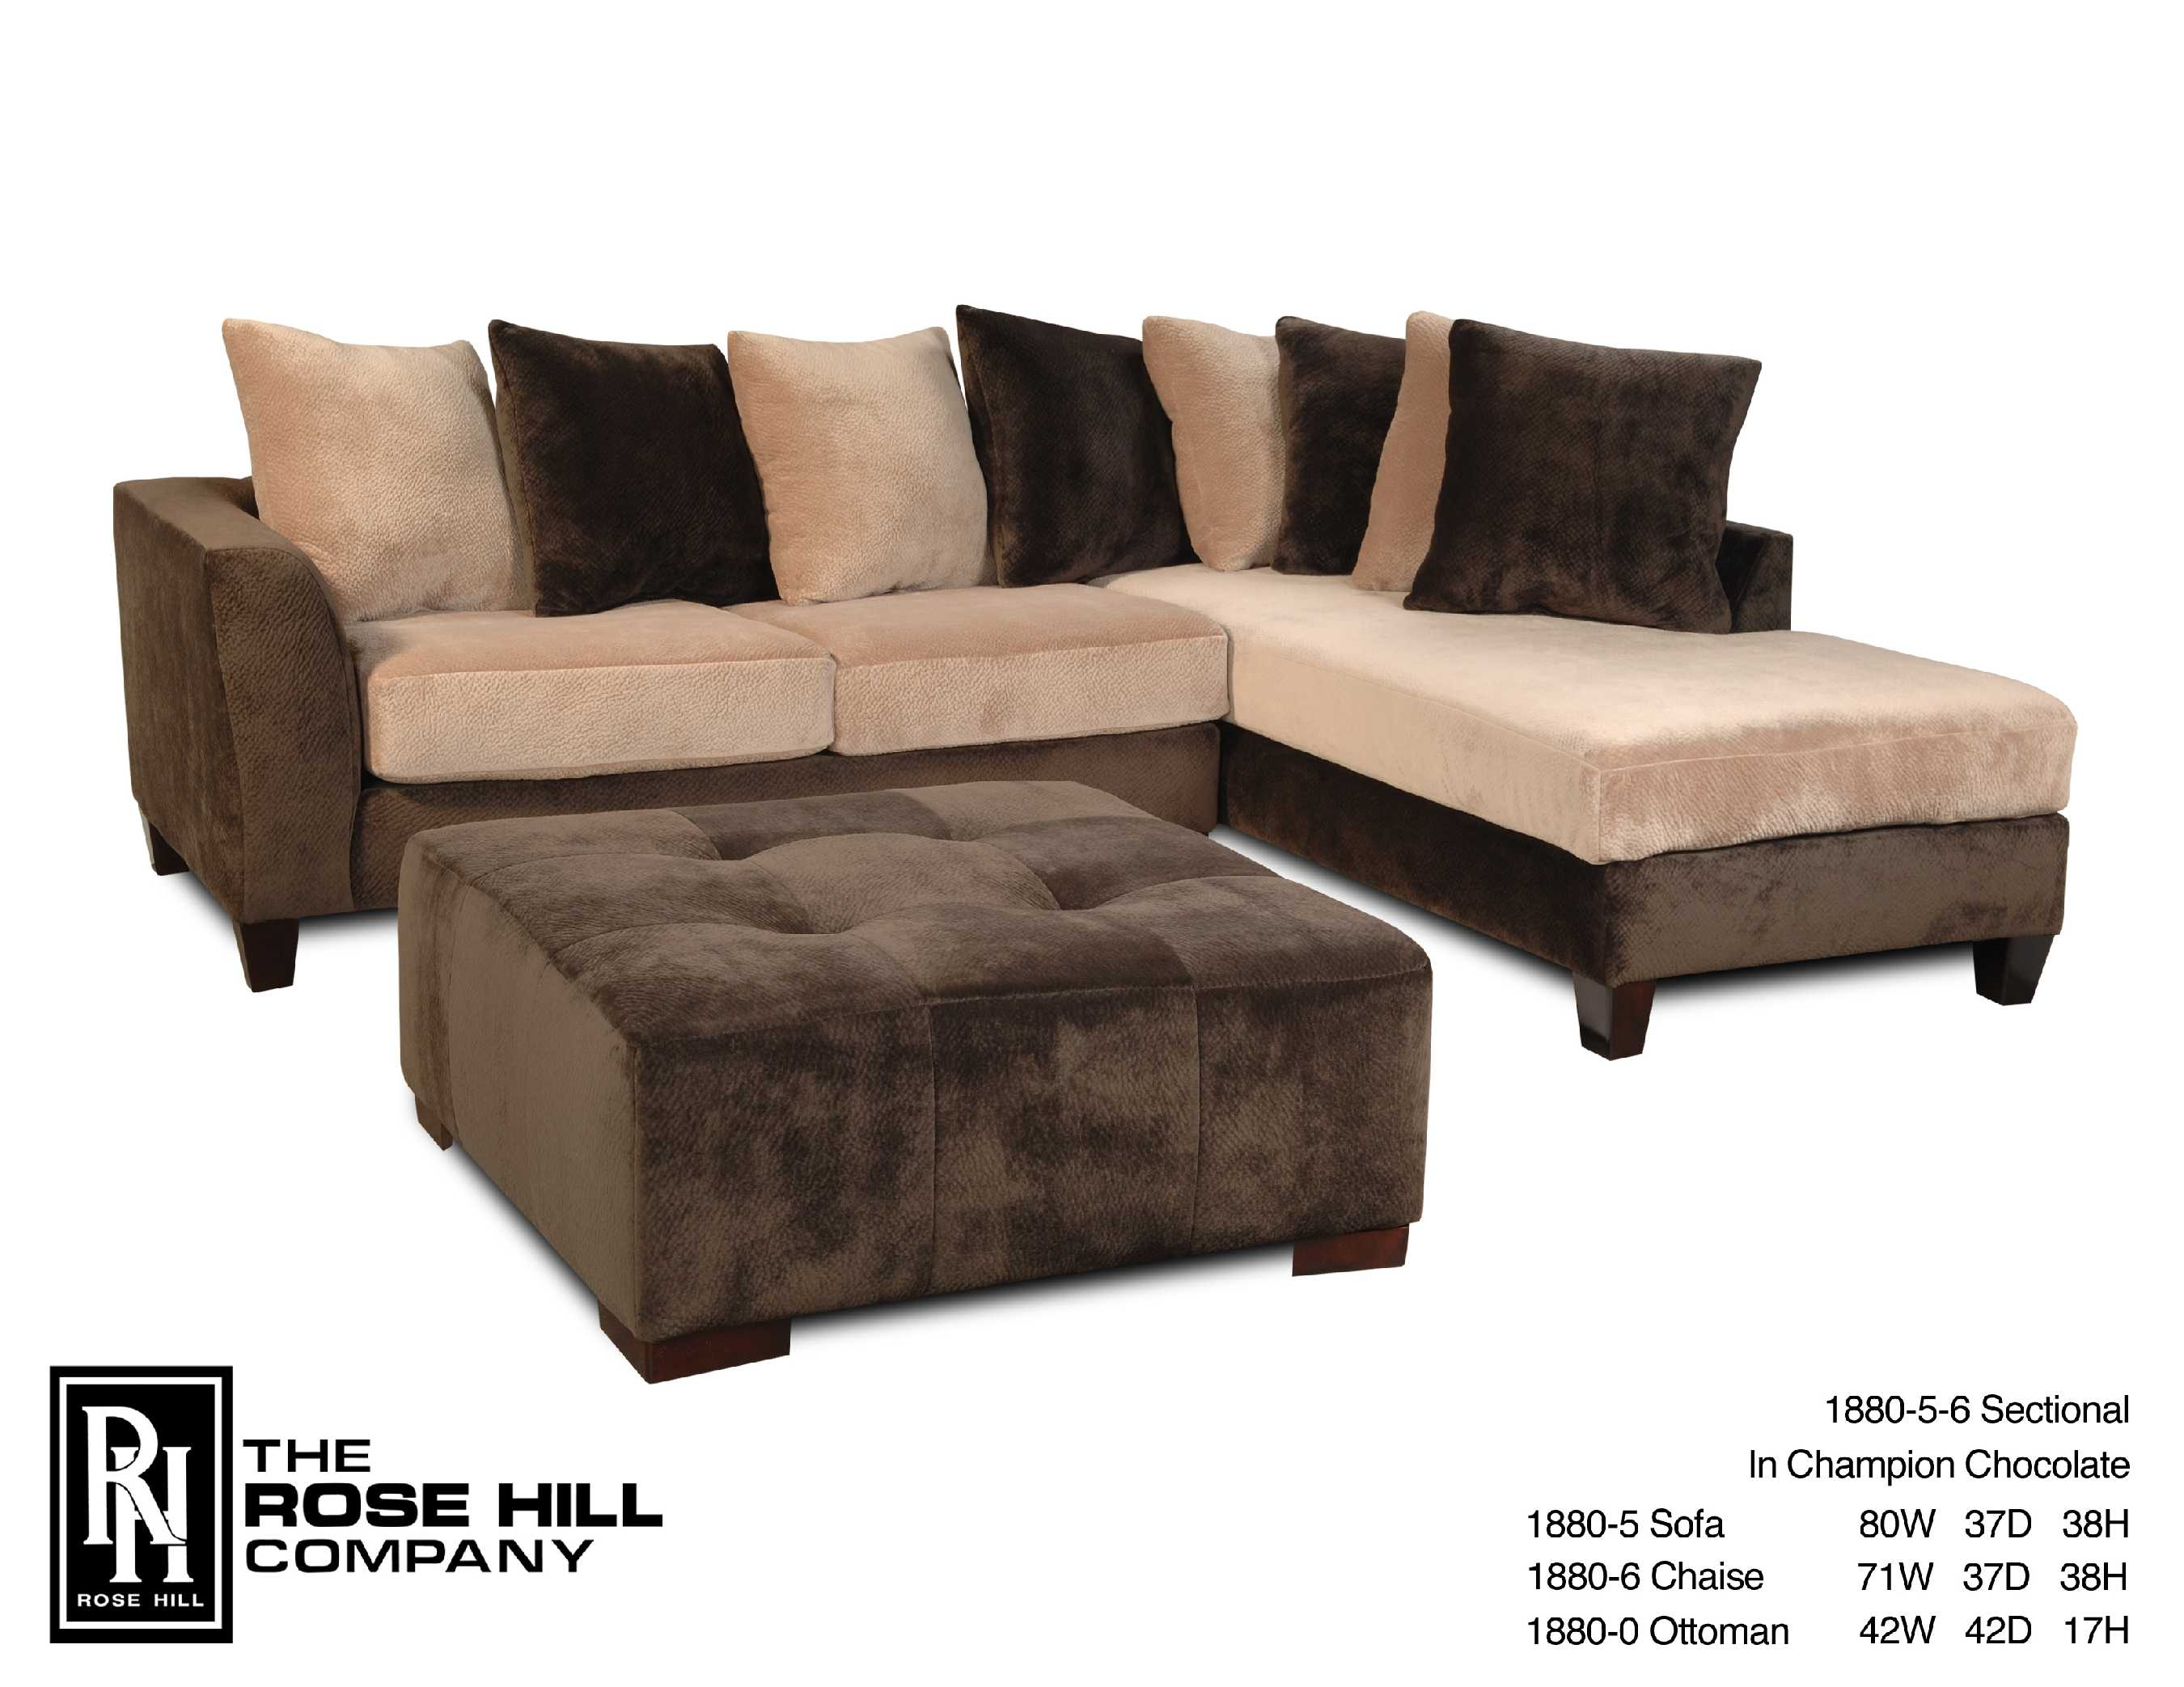 Sofas Center Piece Sectional Sofa With Recliners Costco Beds Set Intended For Champion Sectional Sofa (Image 14 of 15)